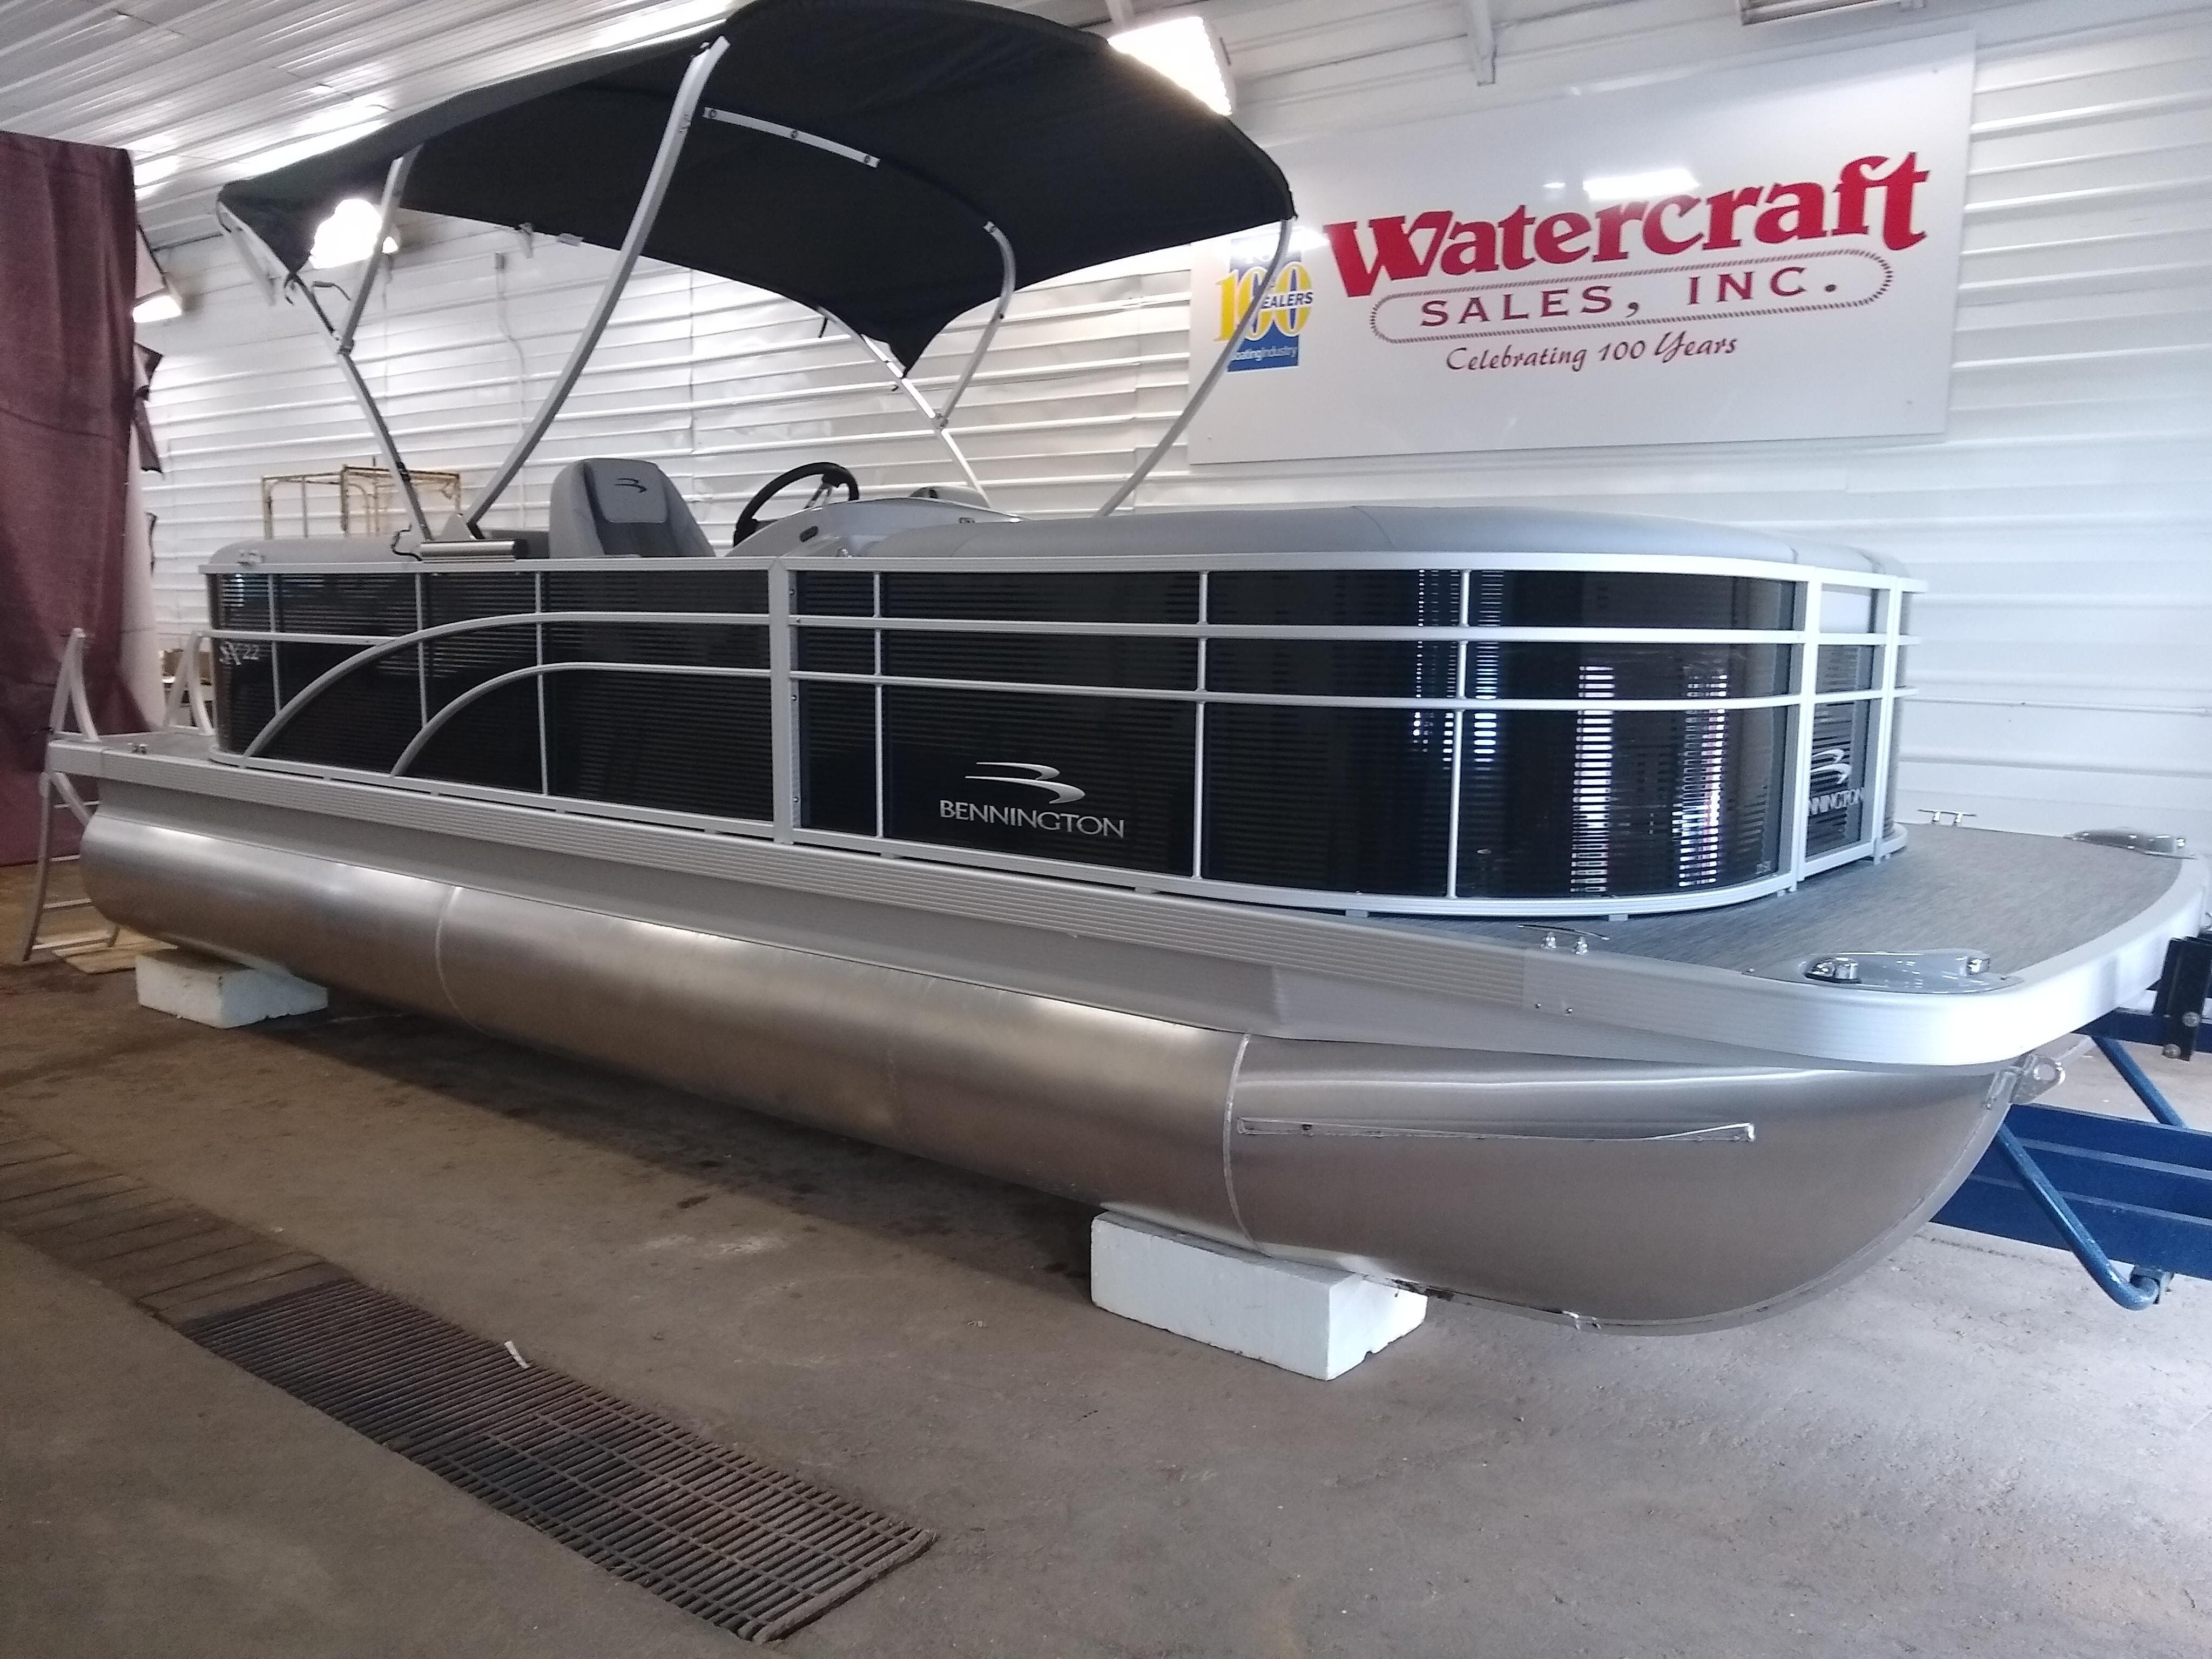 2020 Bennington boat for sale, model of the boat is SX Series 22 & Image # 4 of 14